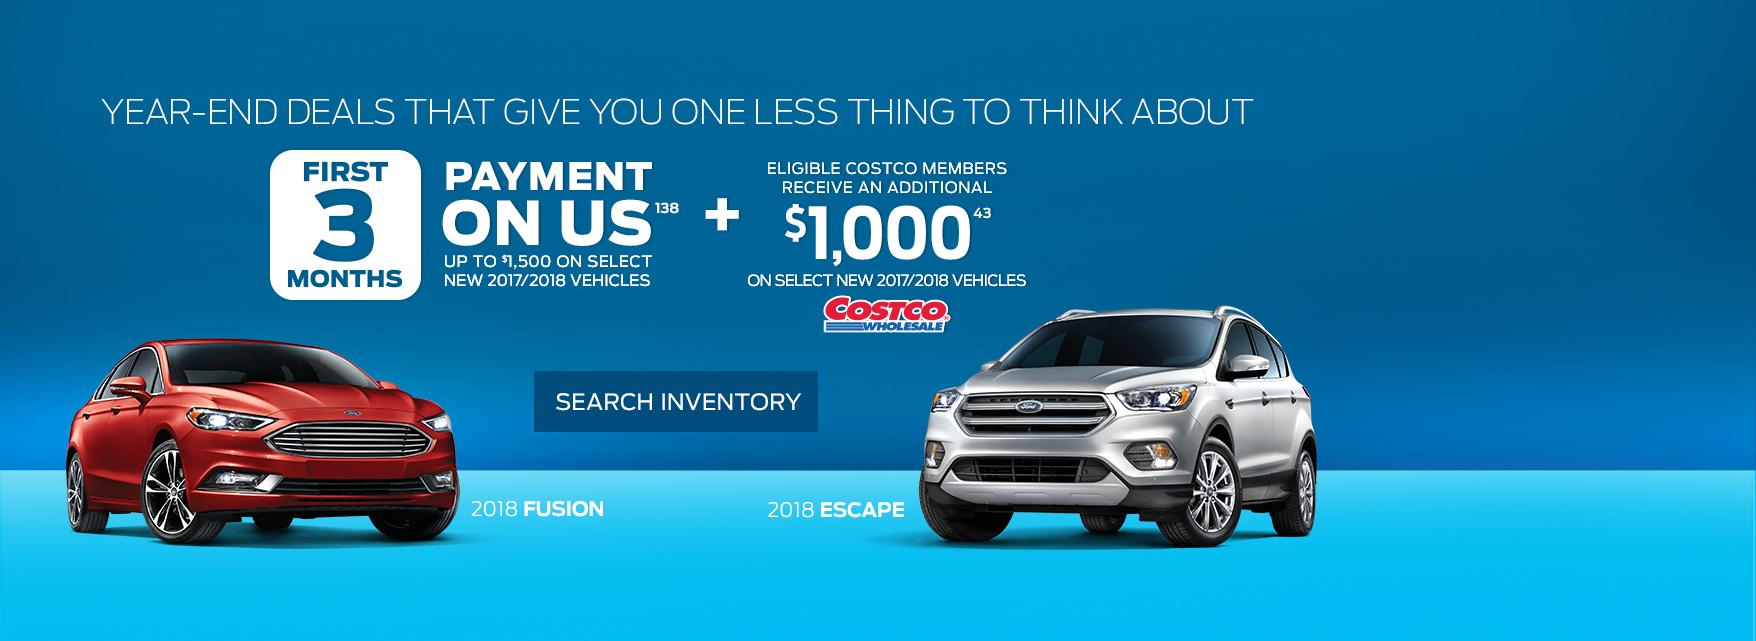 Ford Vehicle Year-End Offer